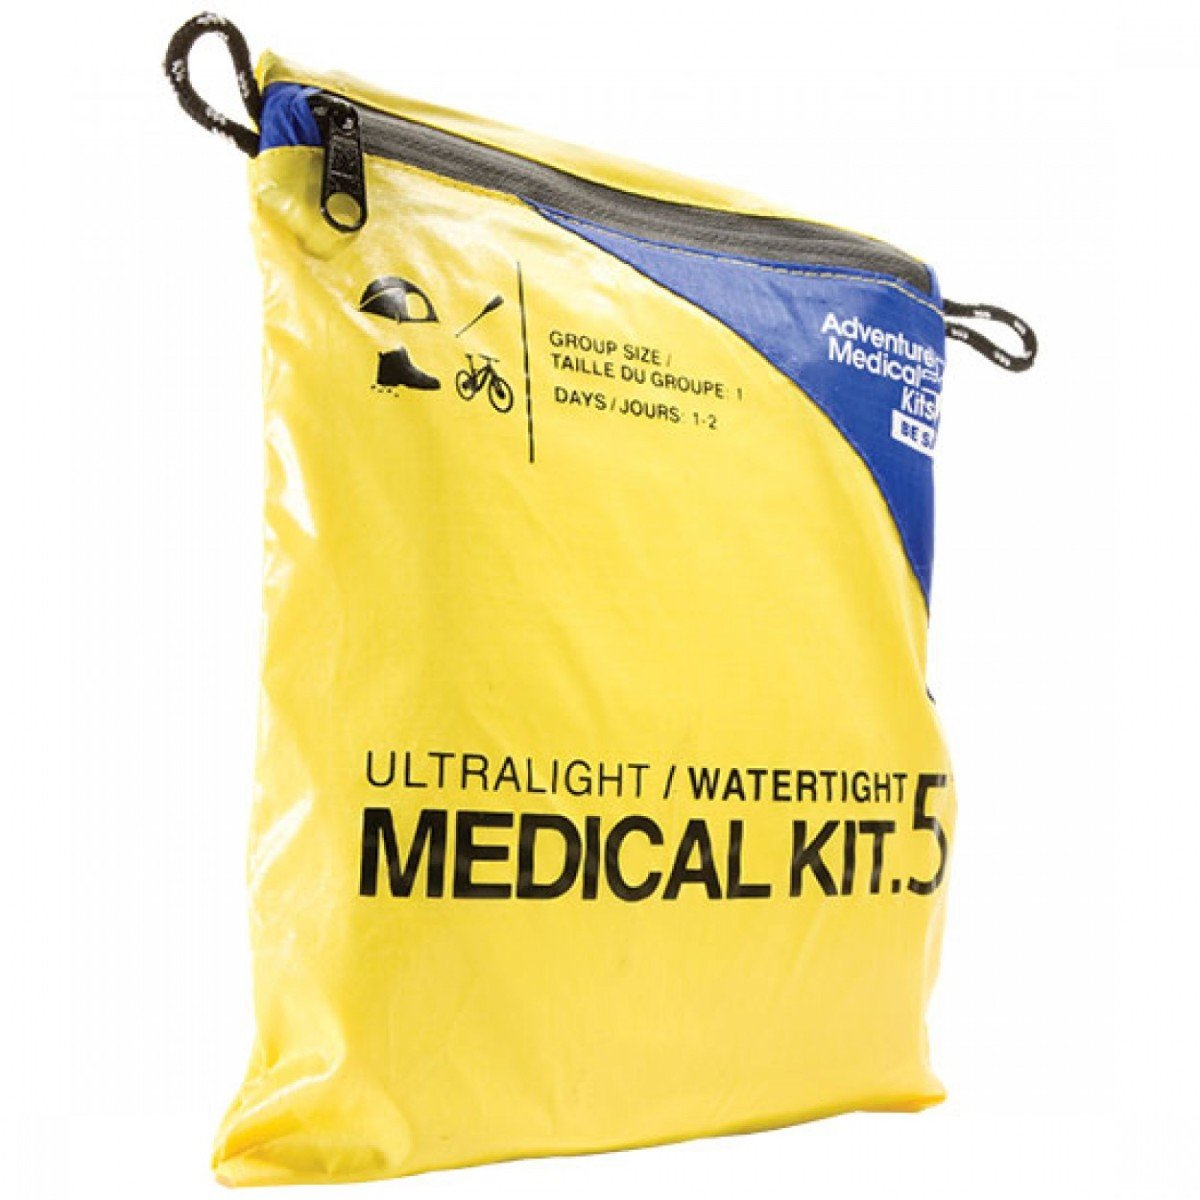 Adventure Medical Kits Ultralight and Watertight 5